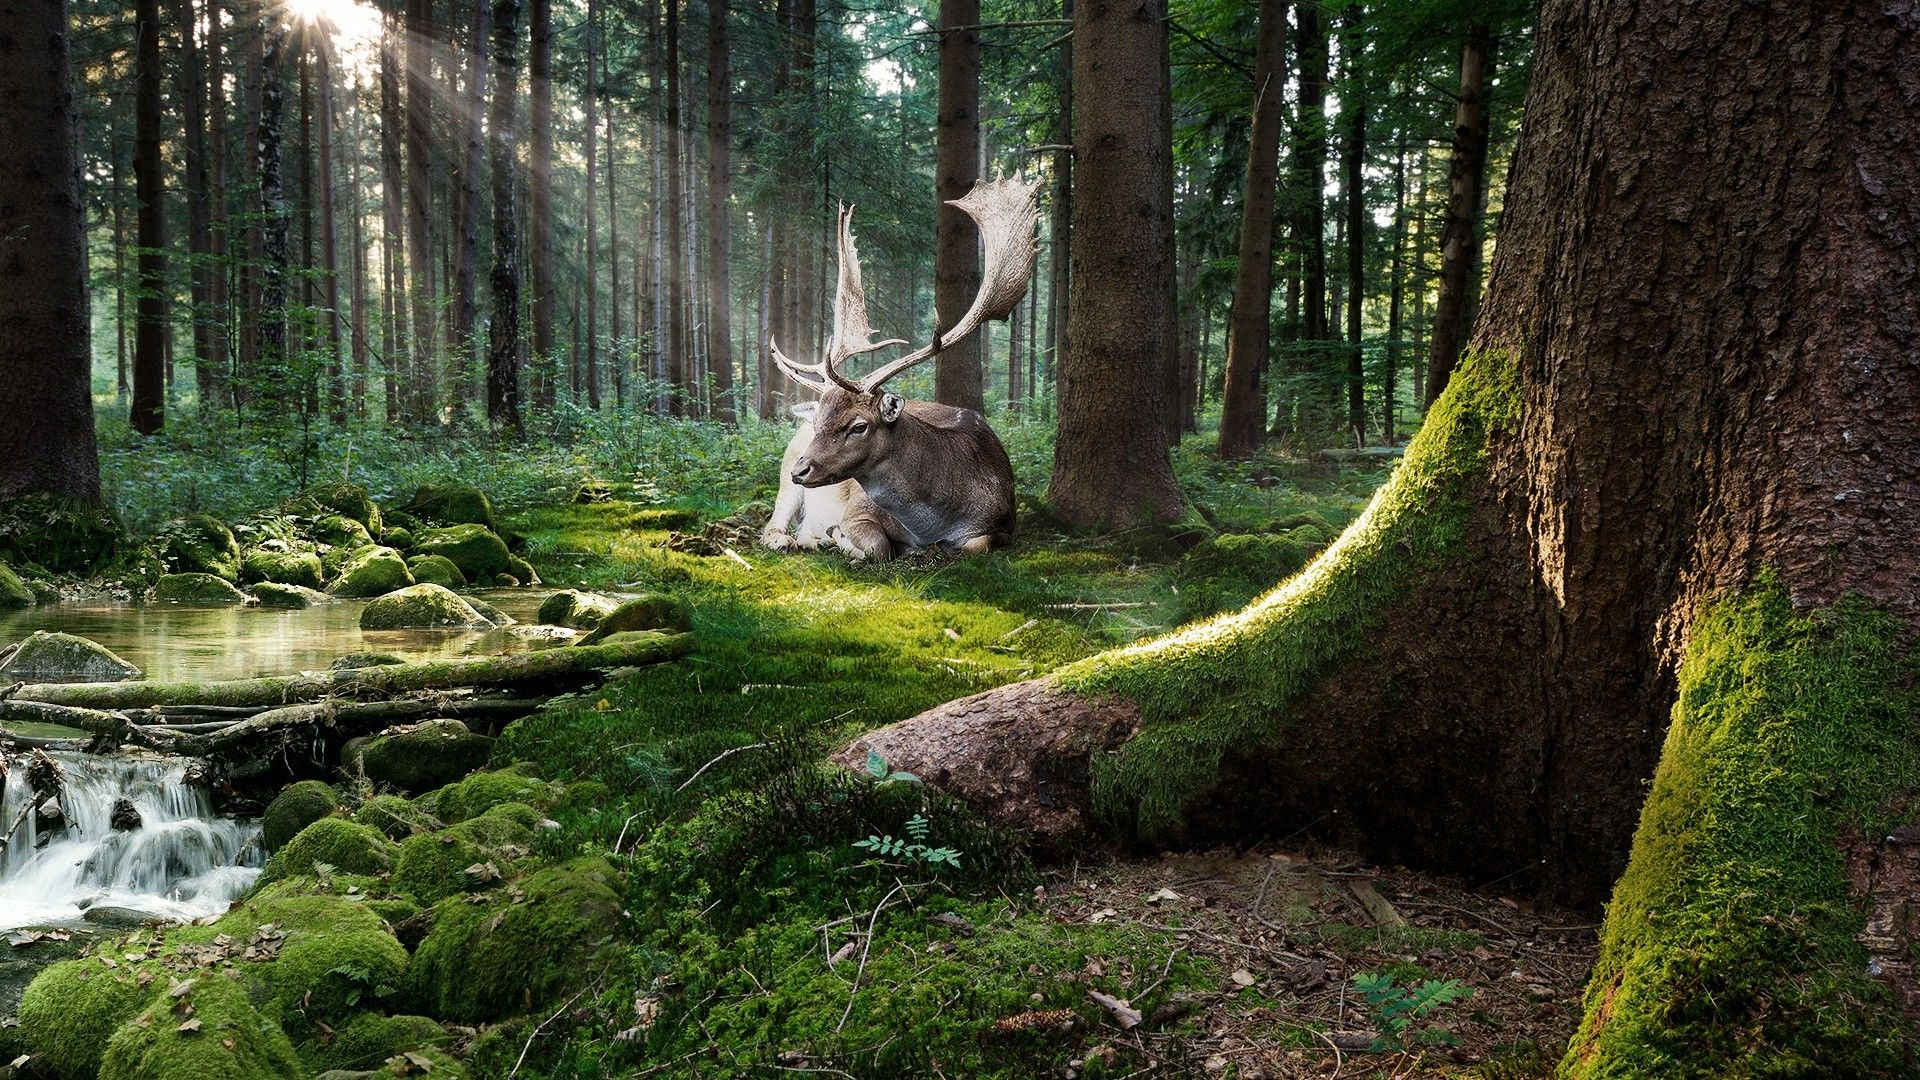 Nature Trees Forest Moss Animals Deer Sun Rays Stones Water Stream Adobe Photoshop Wallpaper Nature Forest Wallpaper Forest